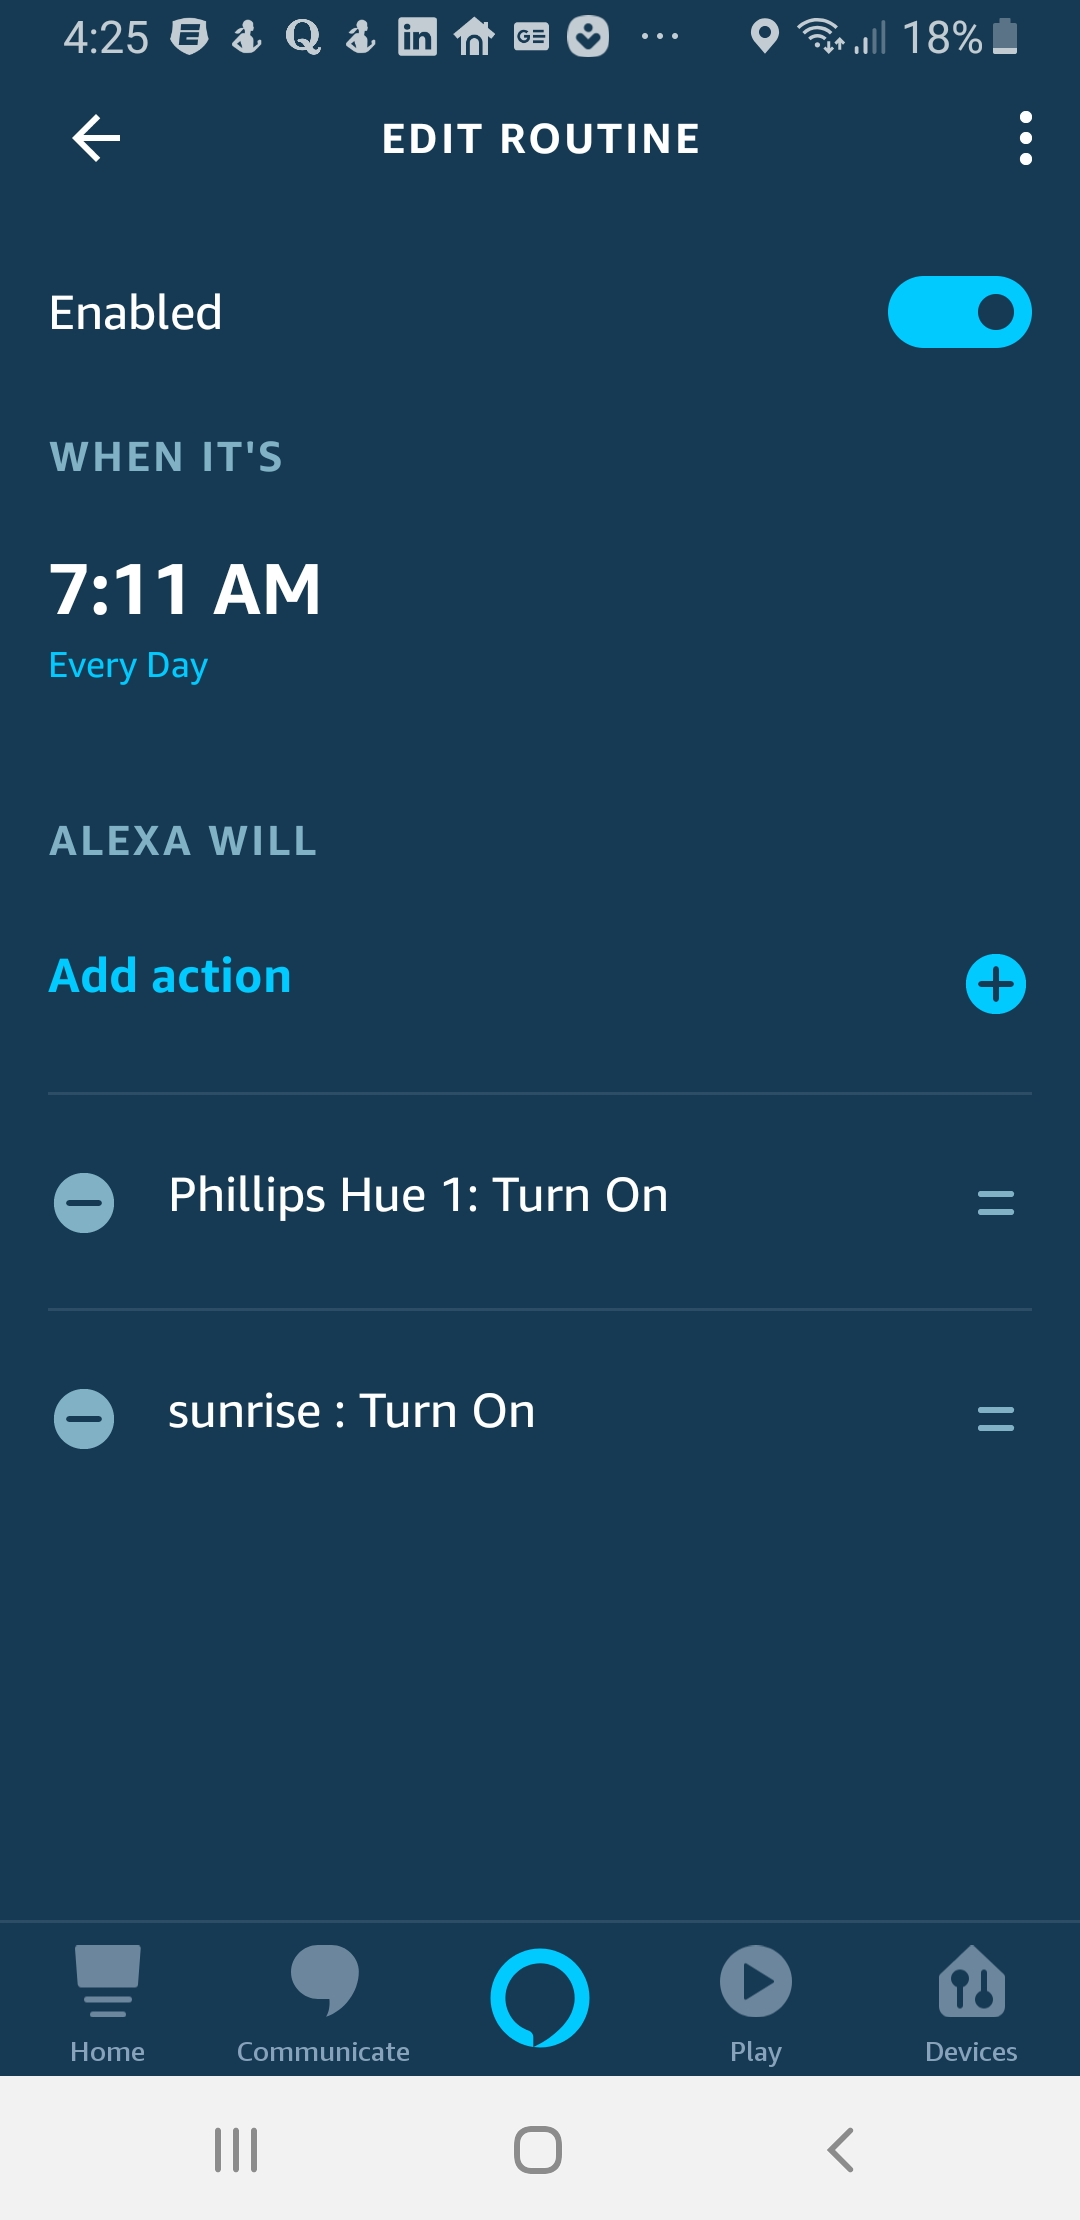 Philips Hue Smart Light Bulbs are among some of the best light bulbs for Alexa. The Screen shot shows setting up a schedule in the Alexa app with a Philips Hue Smart Light Bulb.